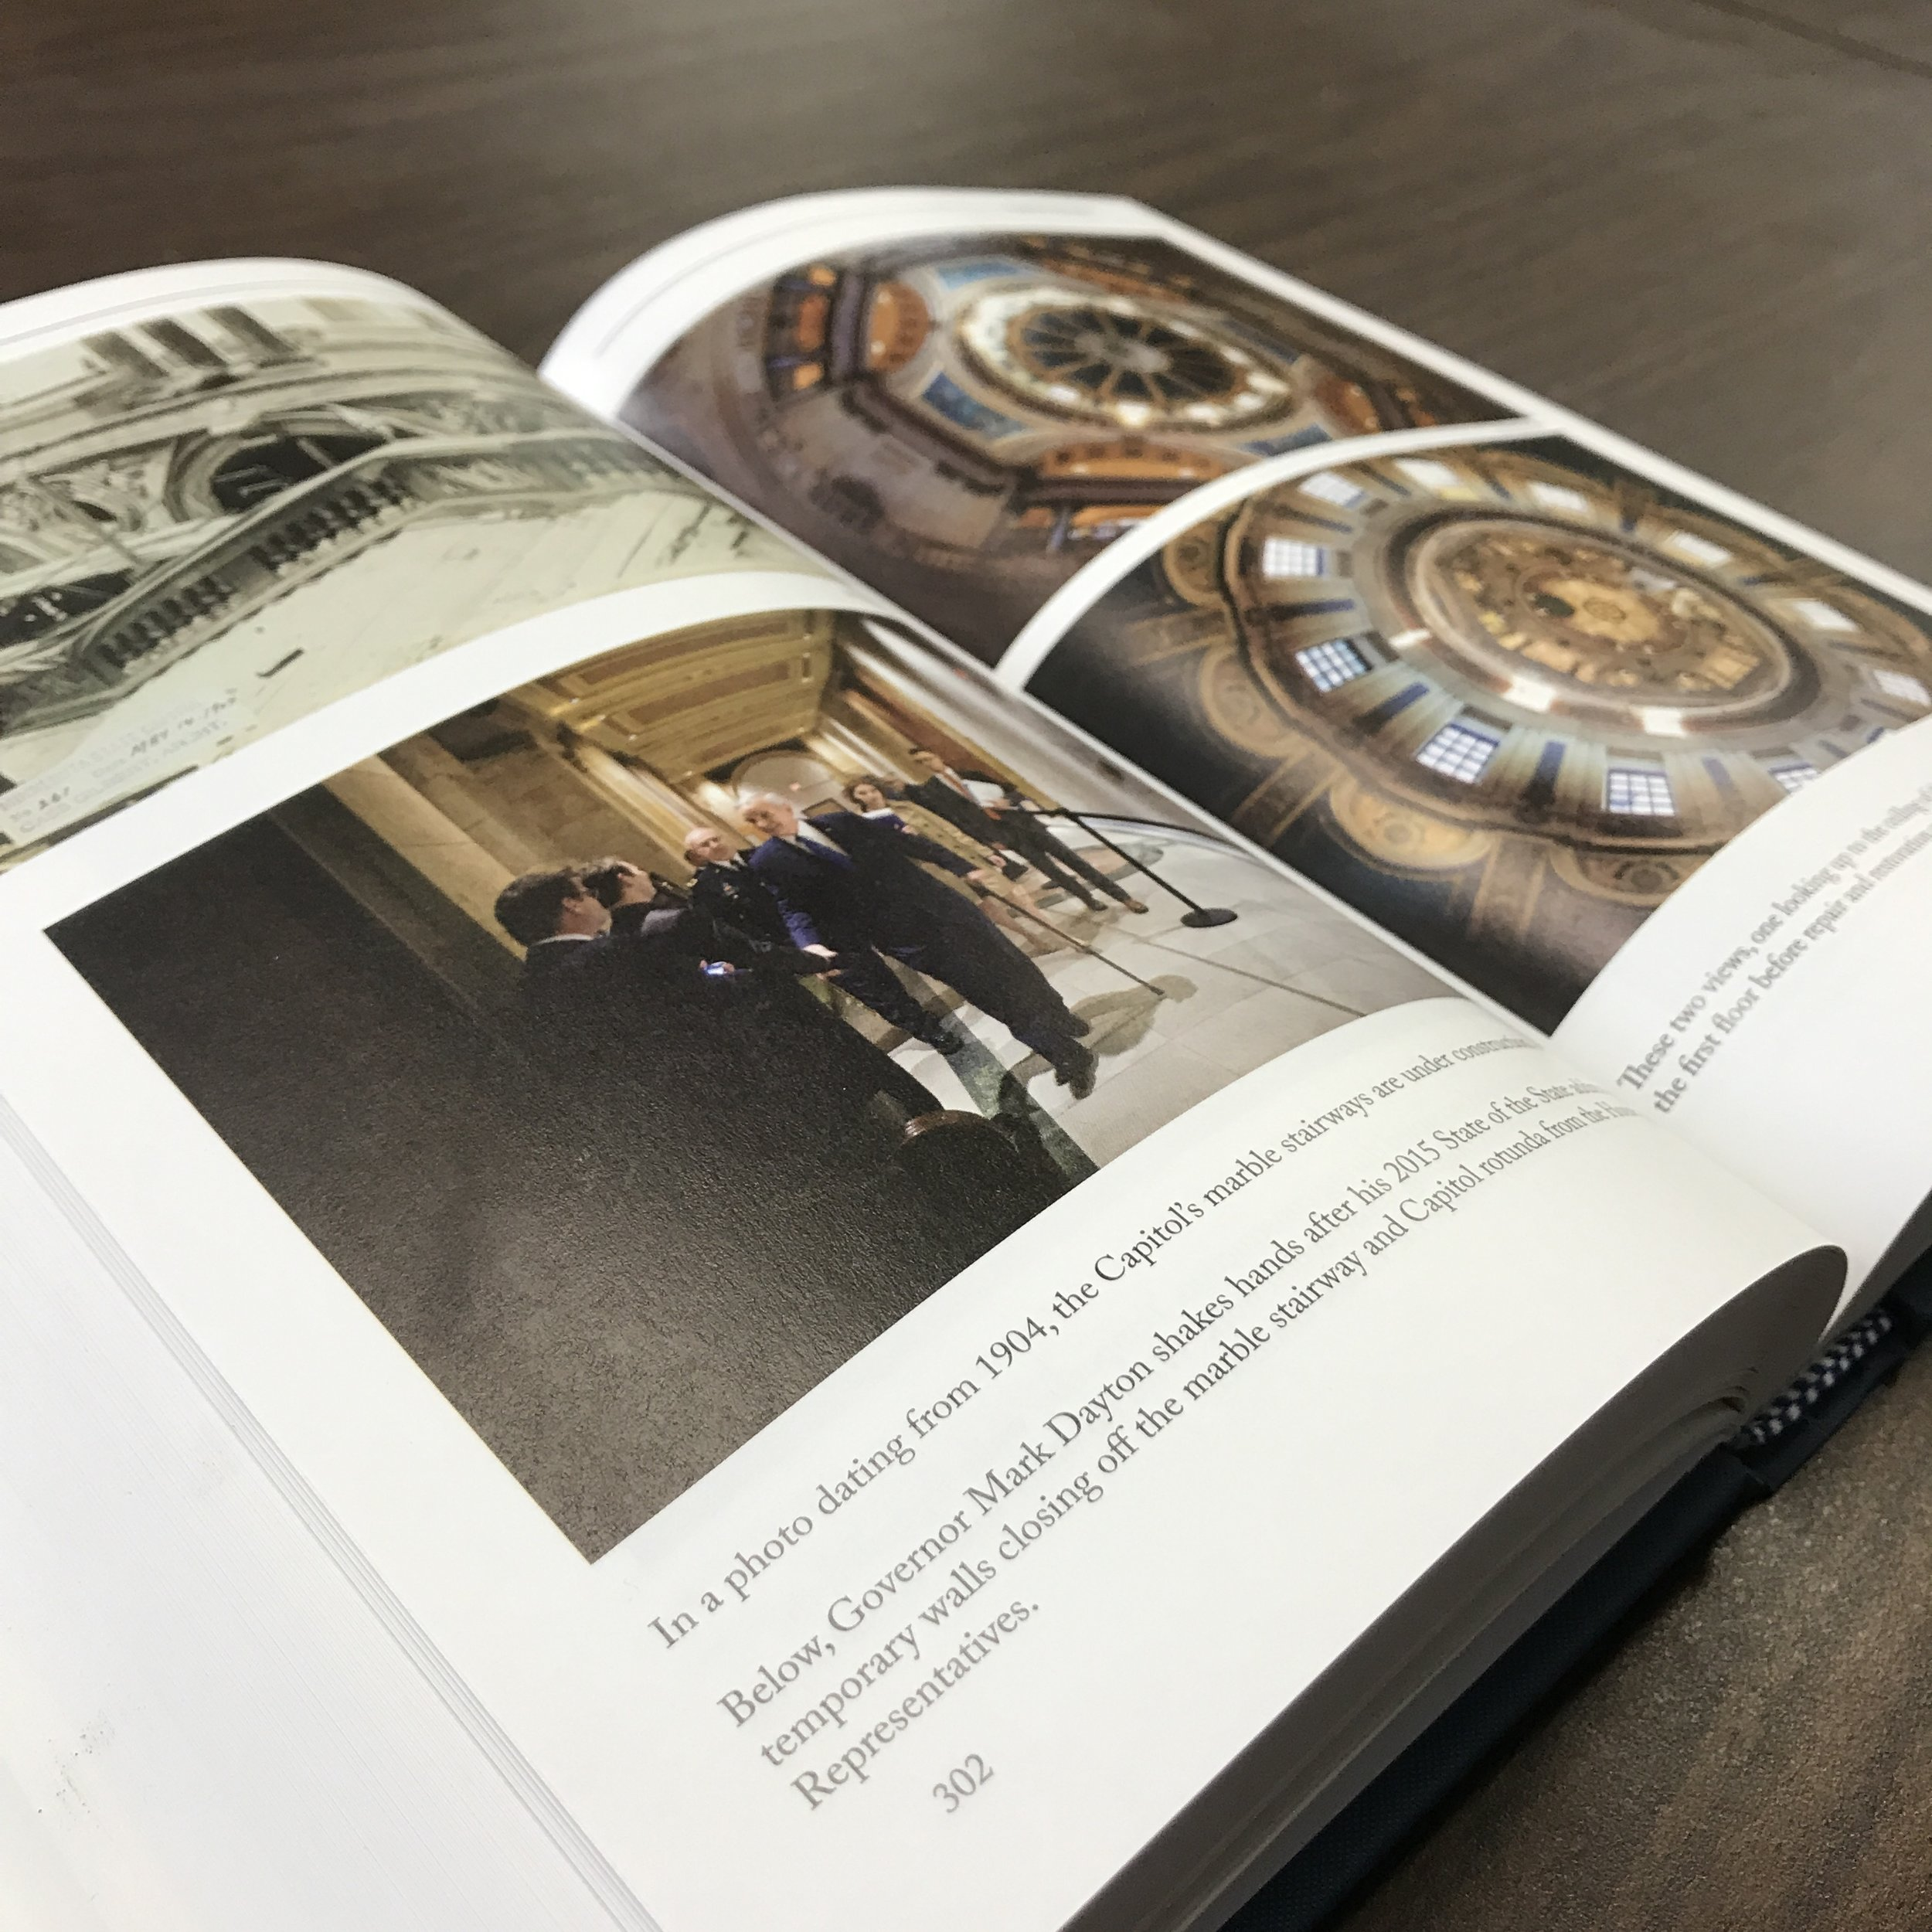 State government book printed in Minnesota